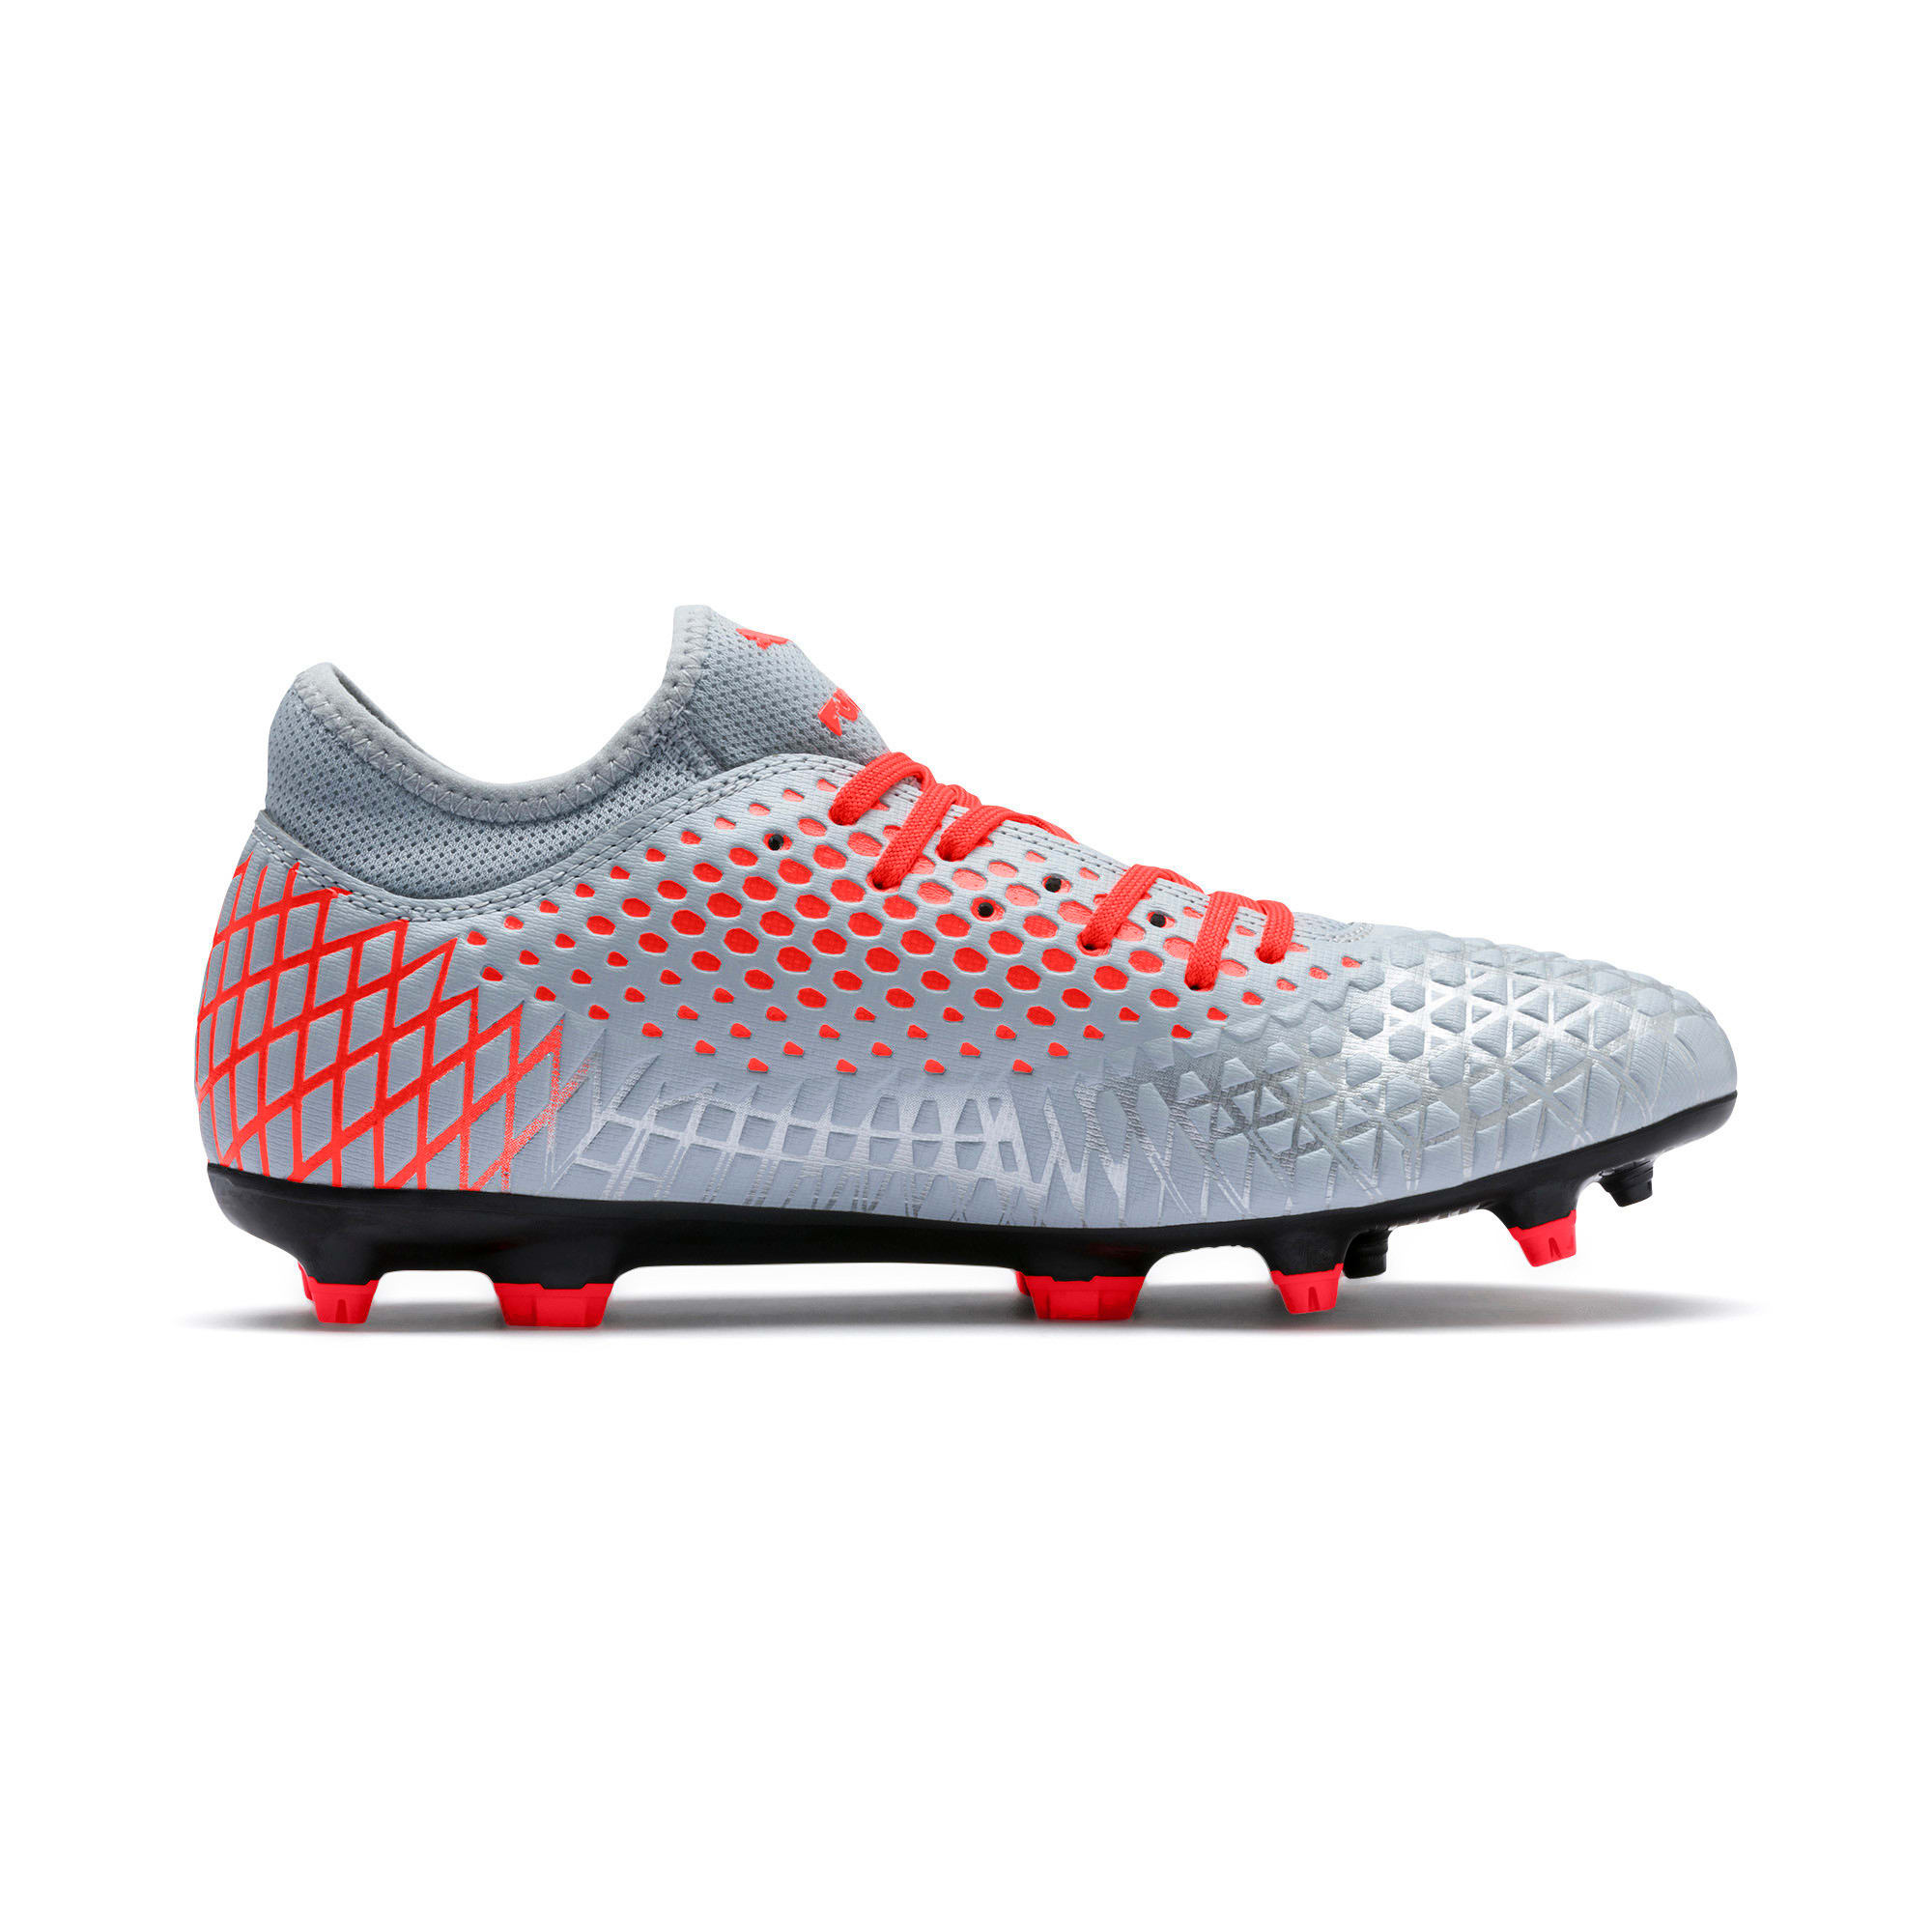 Anteprima 6 di FUTURE 4.4 FG/AG Men's Football Boots, Glacial Blue-Nrgy Red, medio